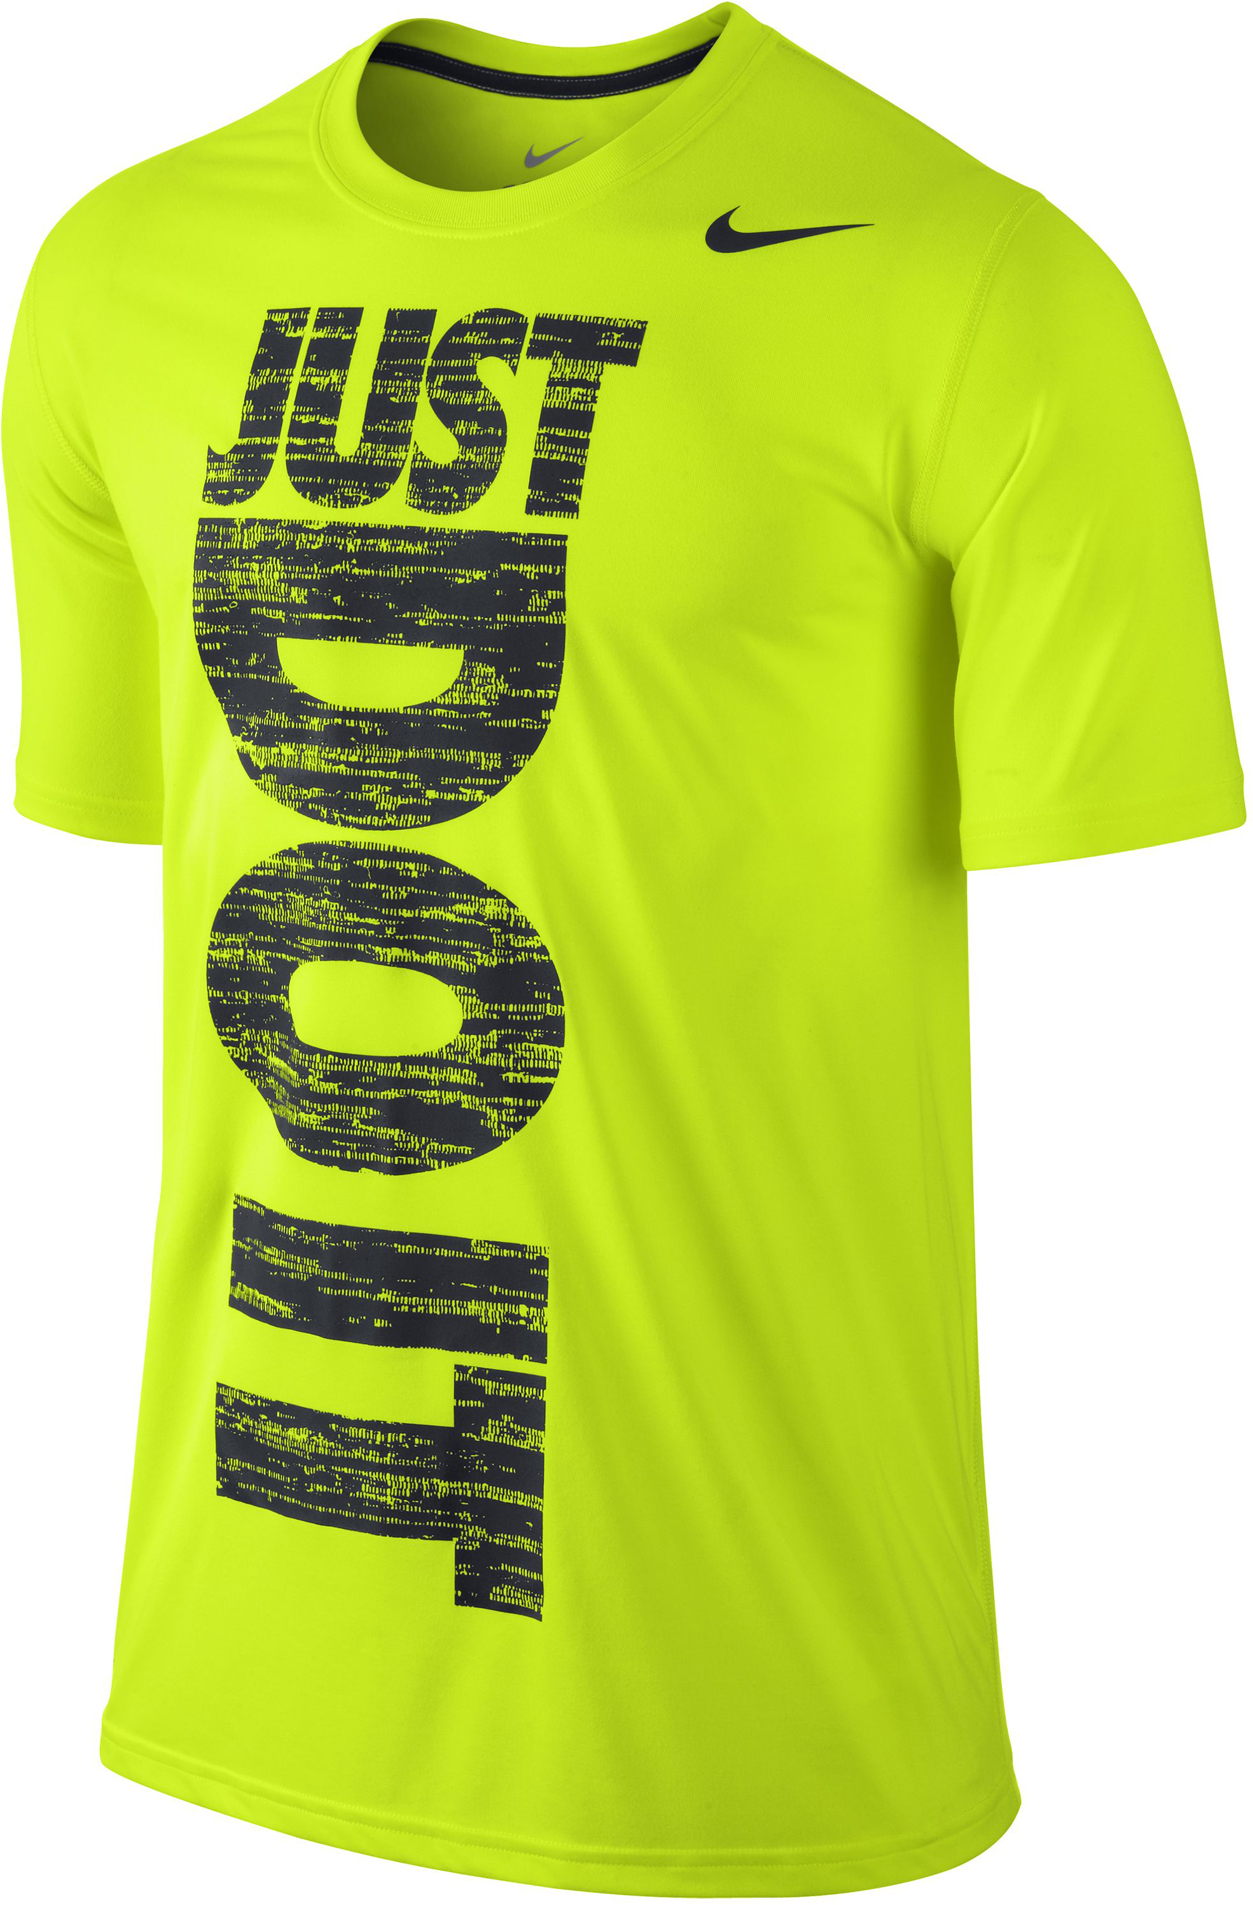 nike shirt quotes